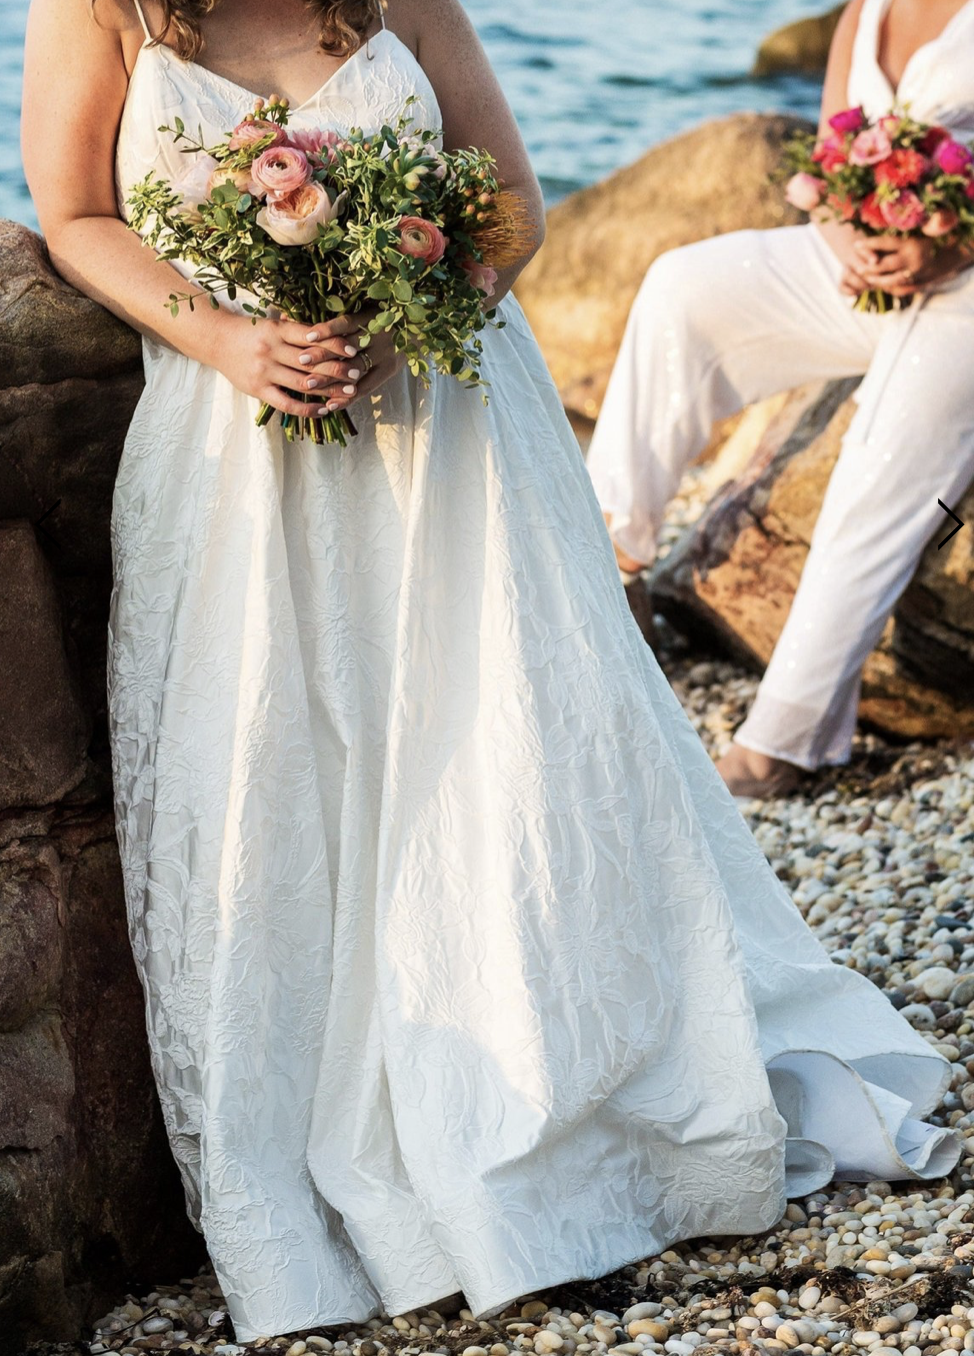 A-line dress from nearly newlywed